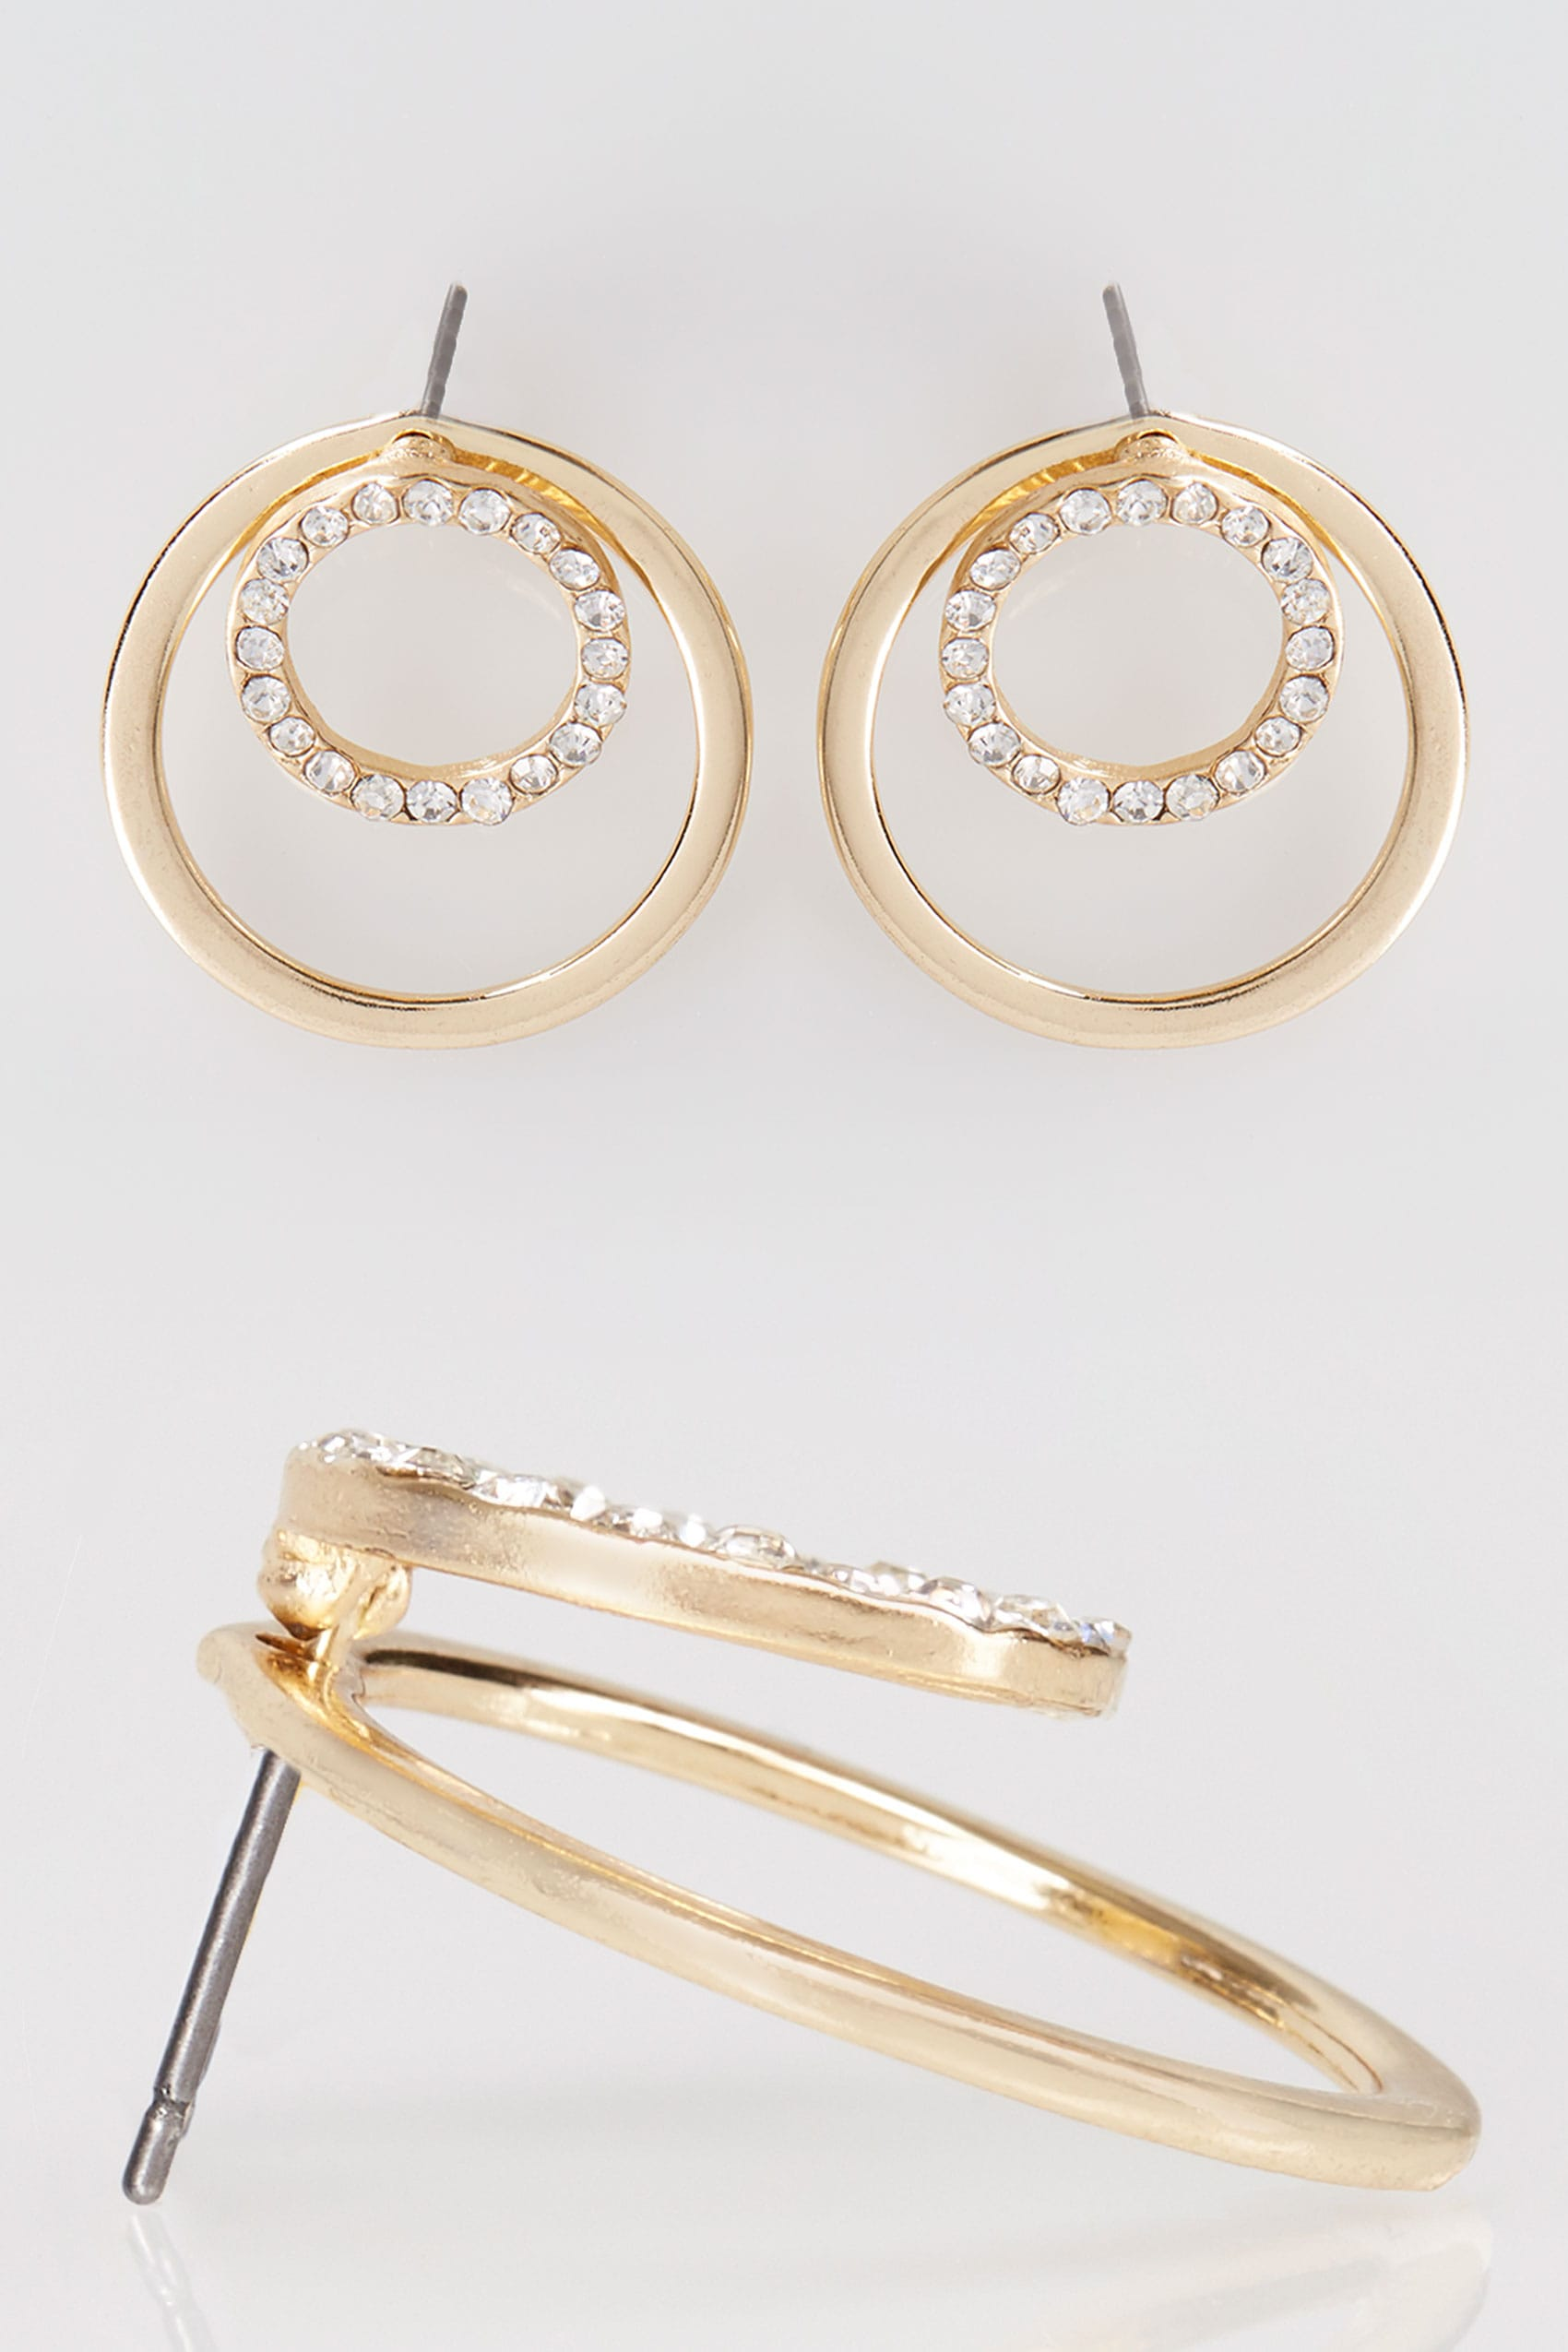 data item description template - gold diamante double circle earrings